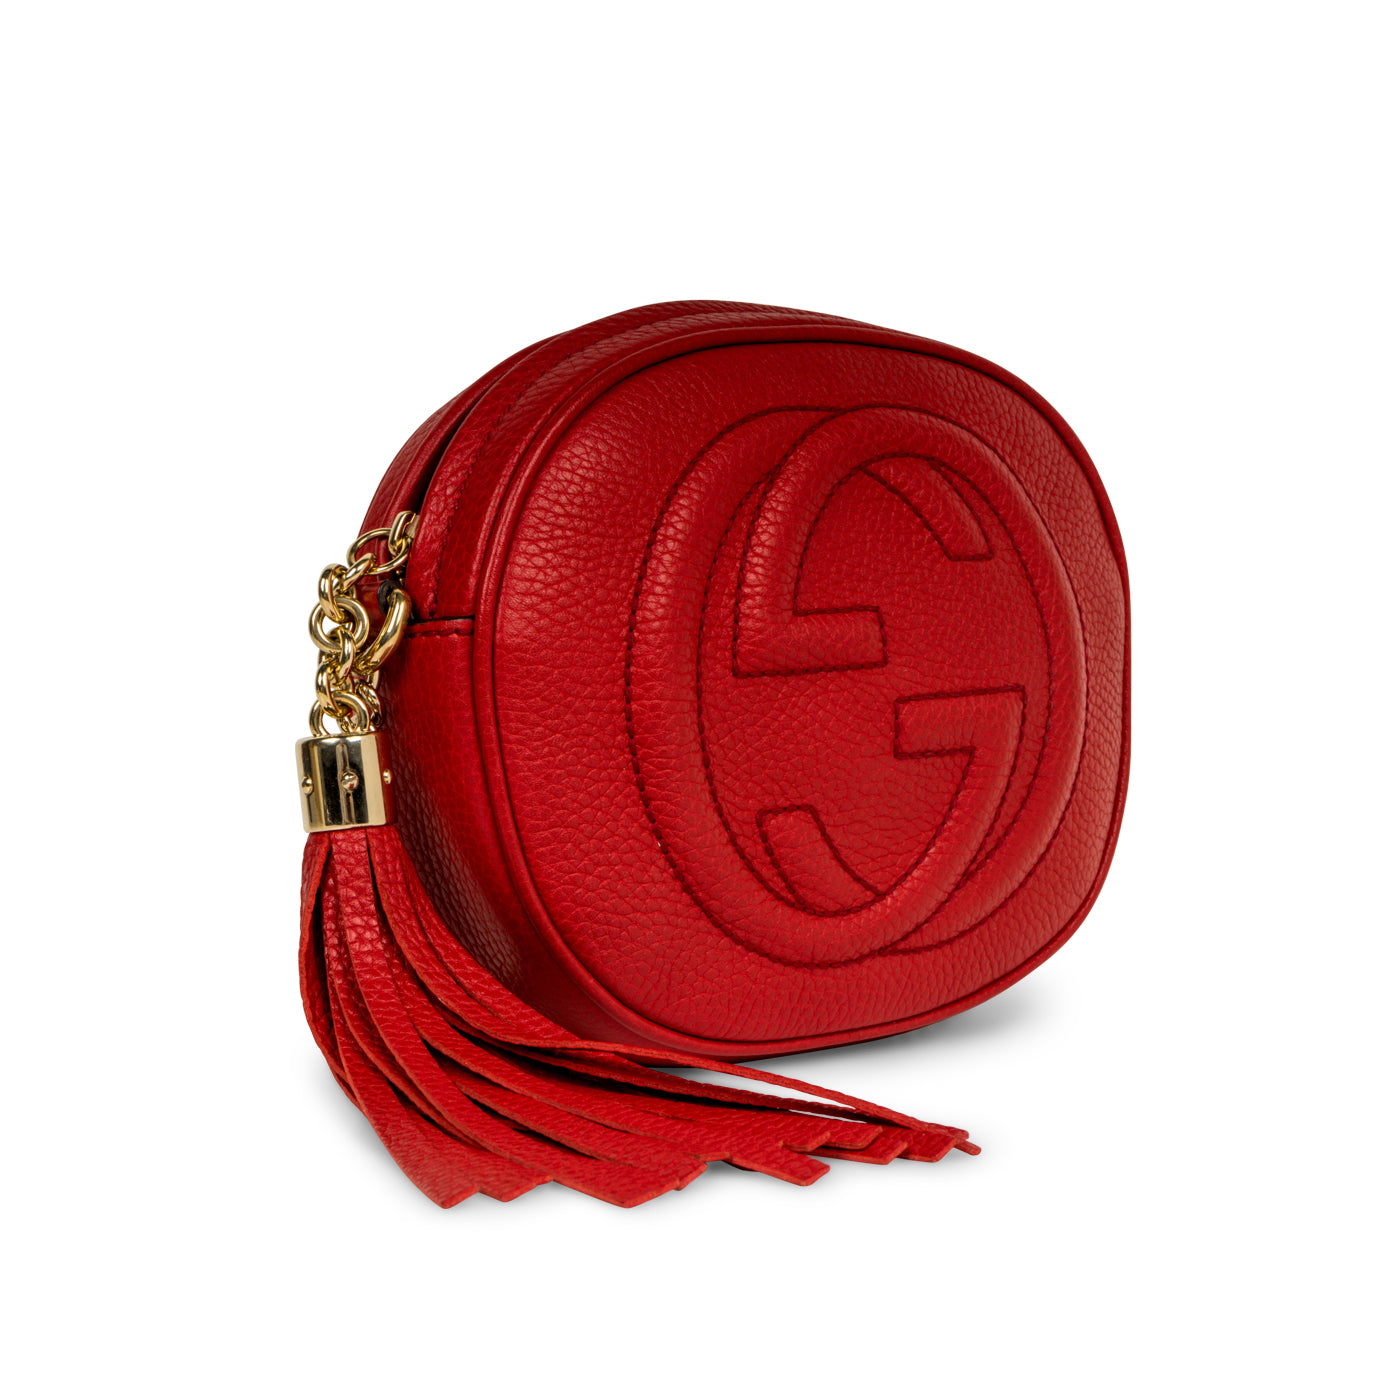 3b59f8022332 Gucci - Soho Disco Chain Bag - Red - Pre Loved | Bagista